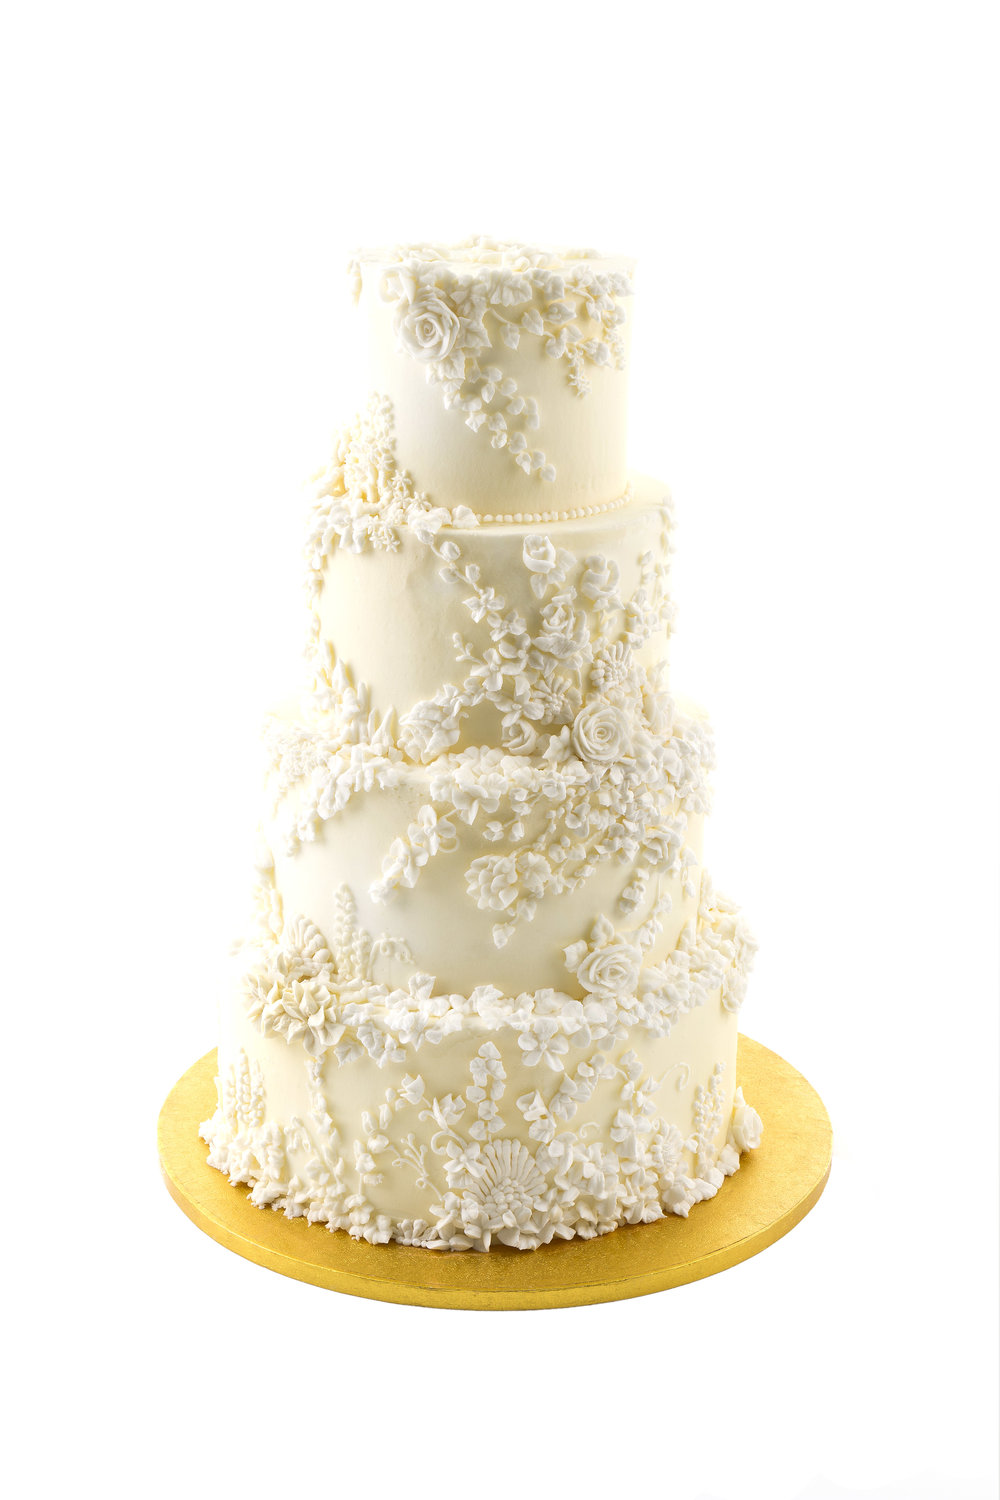 Blog — Emma Page Buttercream Cakes | Bespoke Wedding and Celebration ...